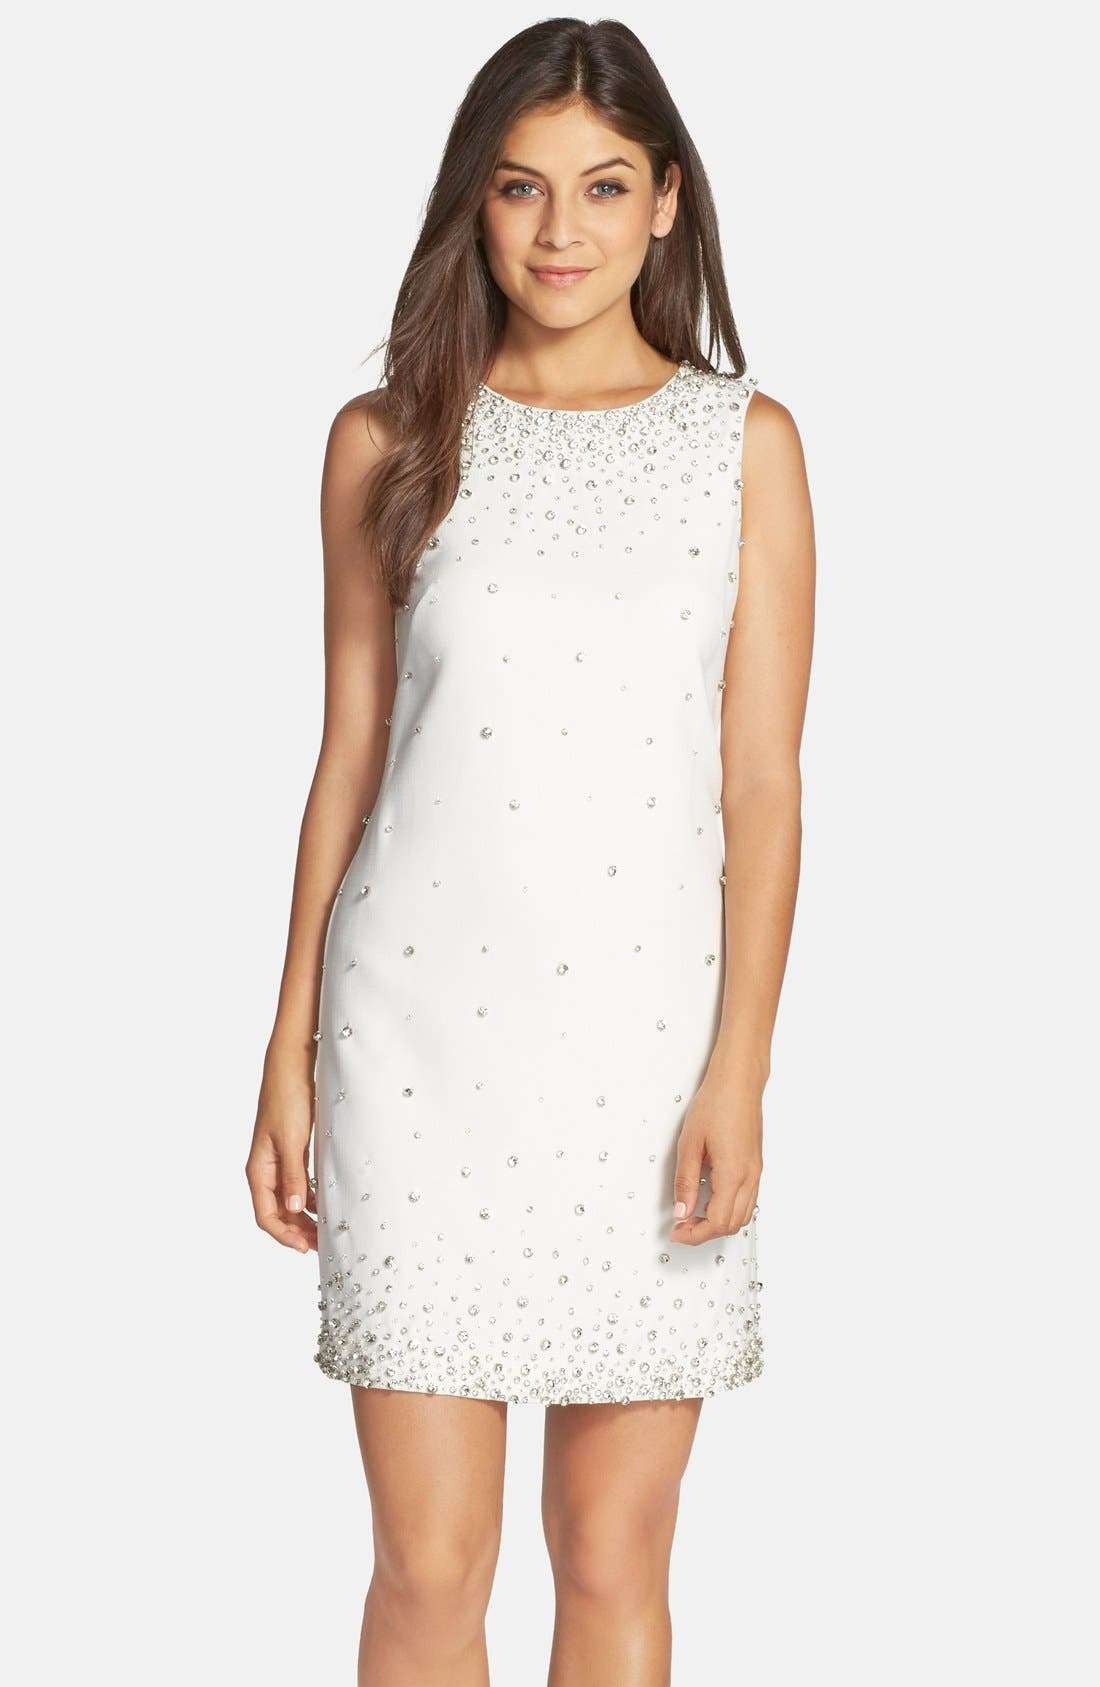 Nordstrom stores offer free basic alterations on many full-price items purchased at Nordstrom and Trunk Club, online or in stores. To receive the service, bring in your receipt or packing slip for your consultation with an onsite alteration expert.